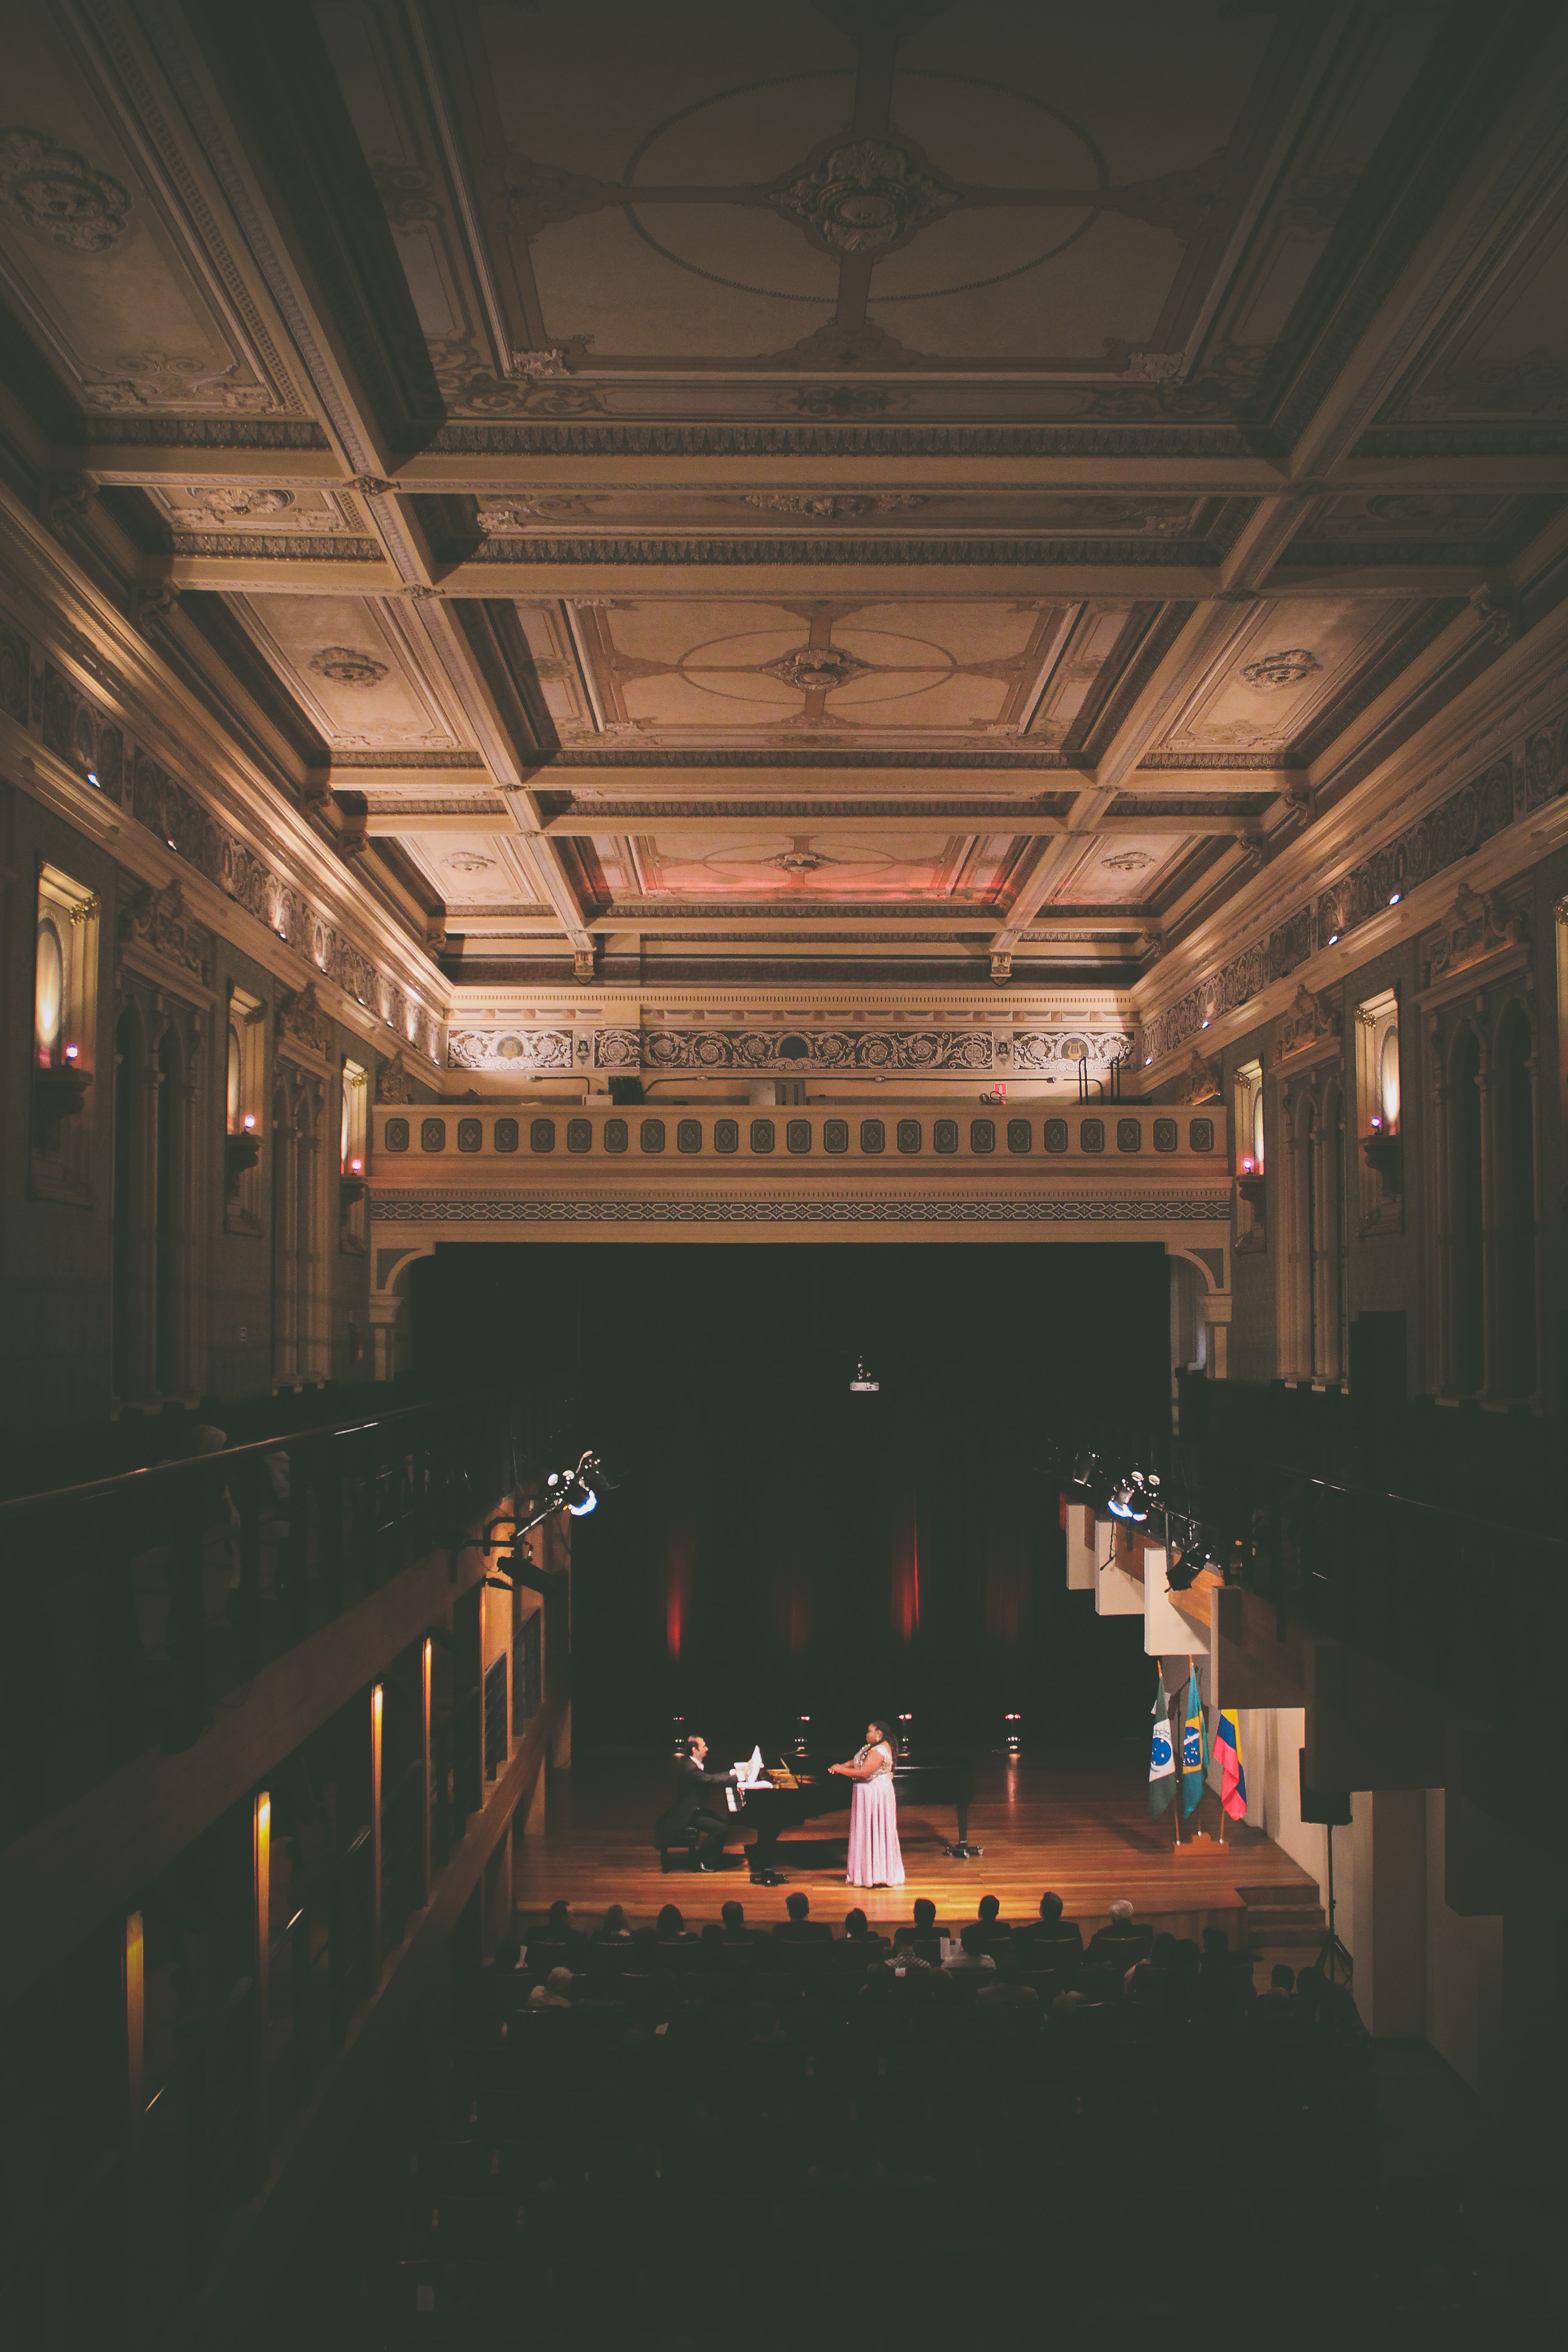 People Performing in Opera House, Architecture, Stage, Singer, Seats, HQ Photo